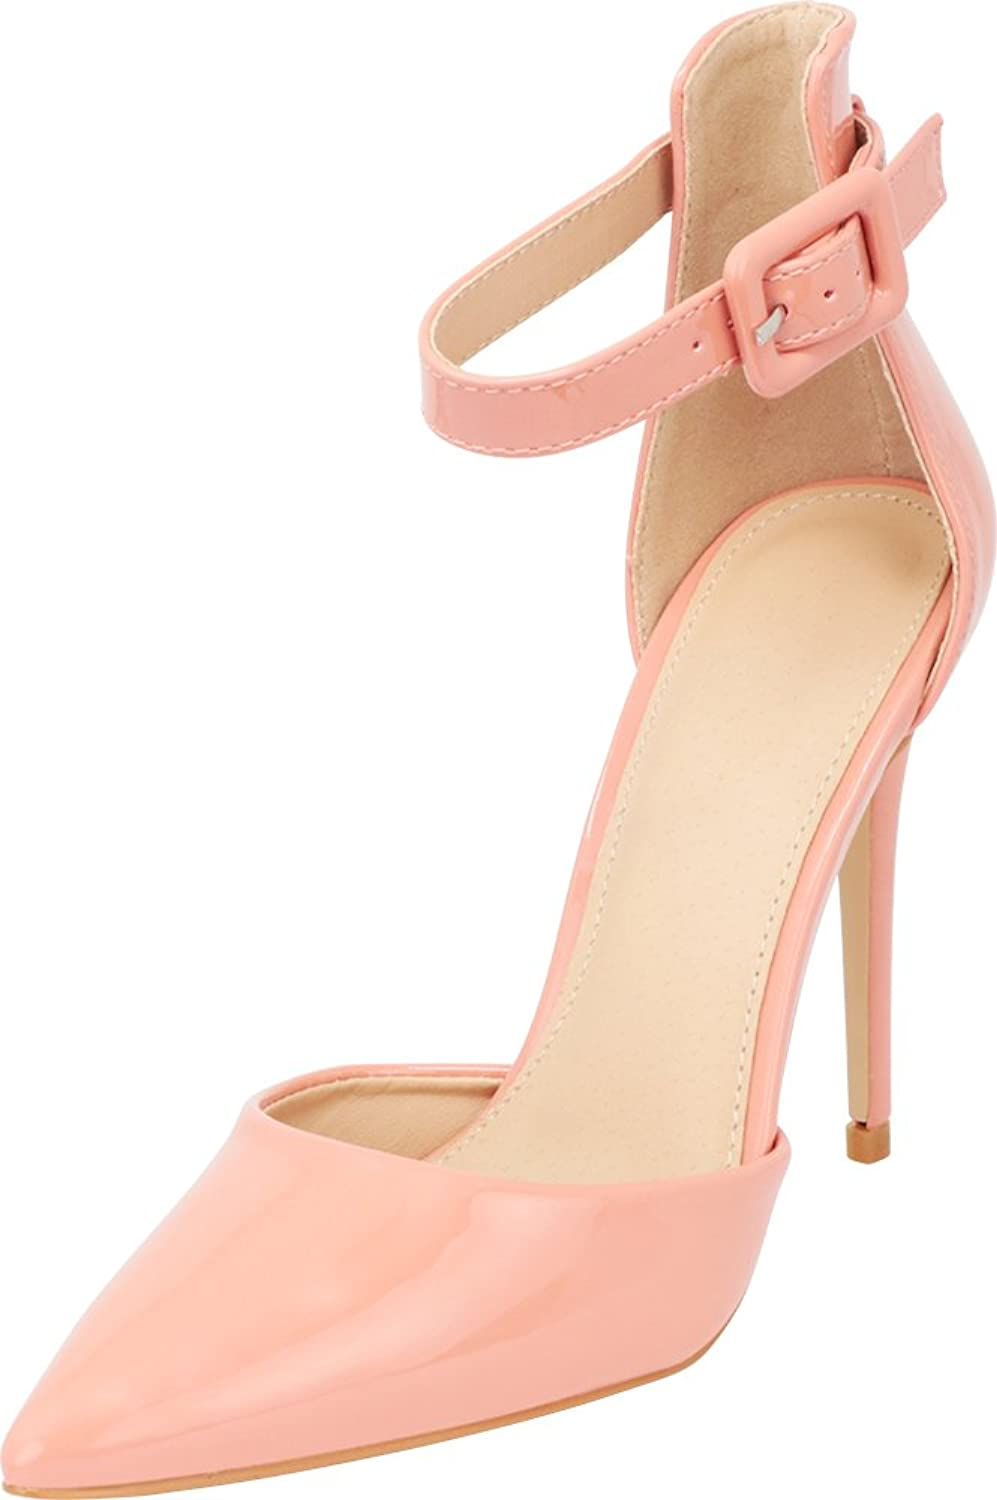 Cambridge Select Women's Closed Pointed Toe D'Orsay Buckled Ankle Strap Stiletto High Heel Pump